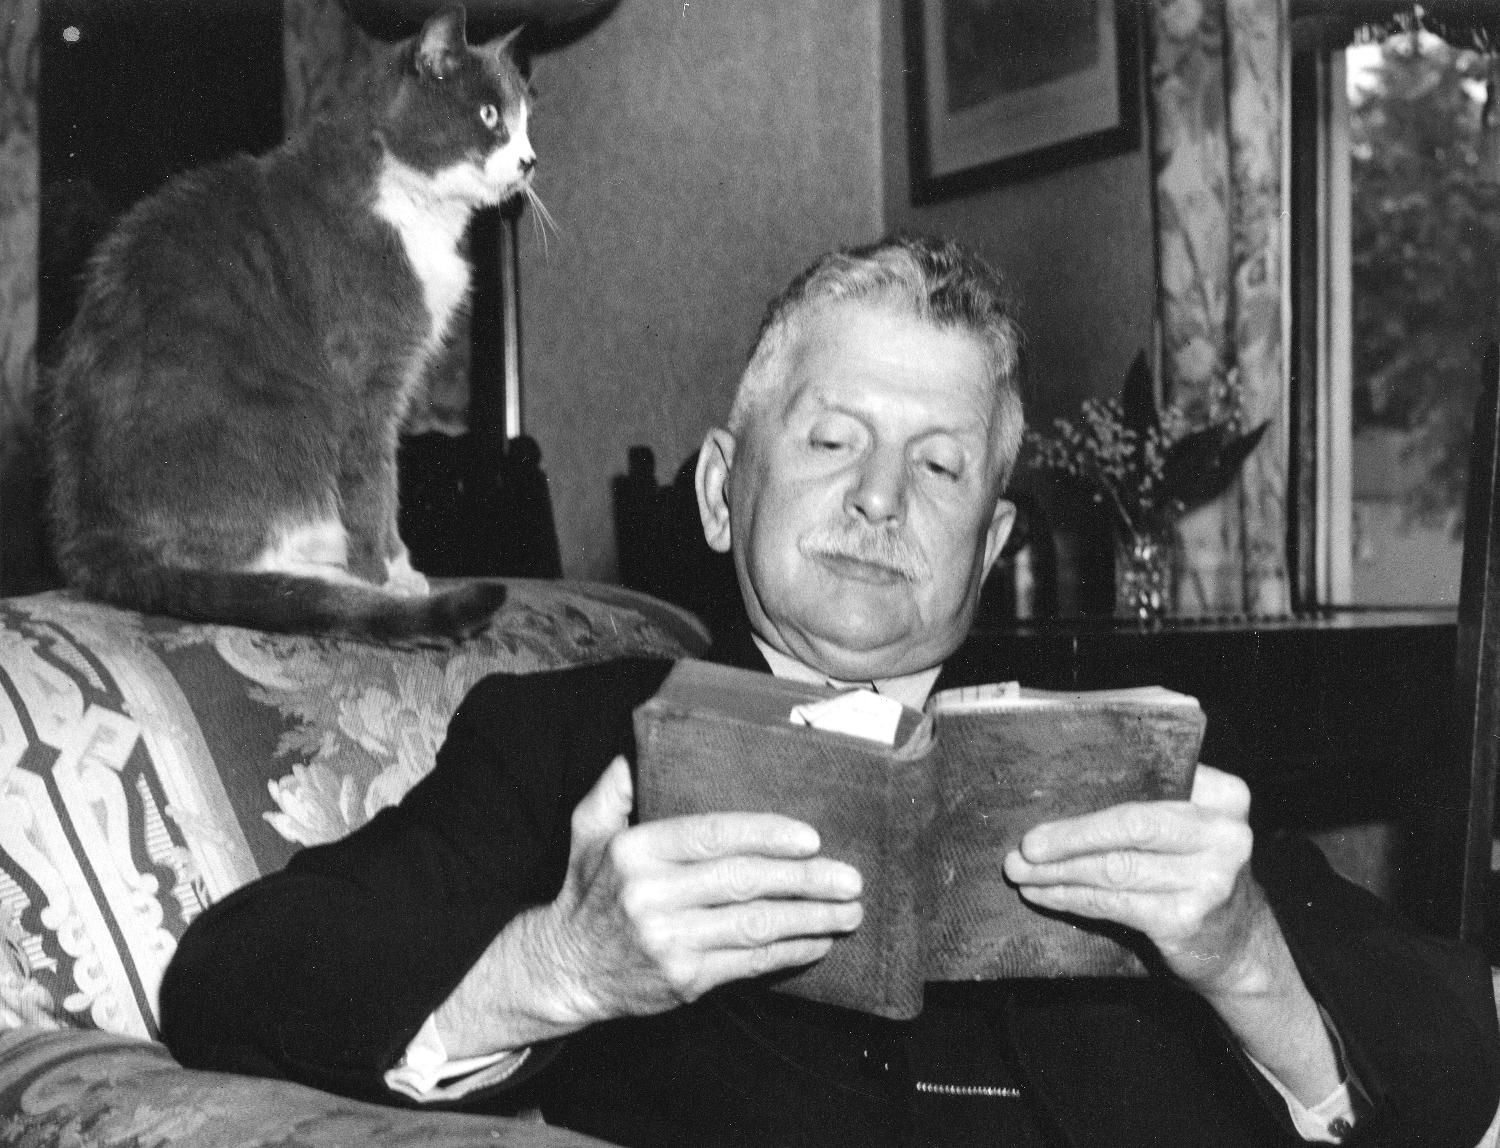 John Bennett with his cat, 1947. Reference code AM54-S4-: Port P1812.3